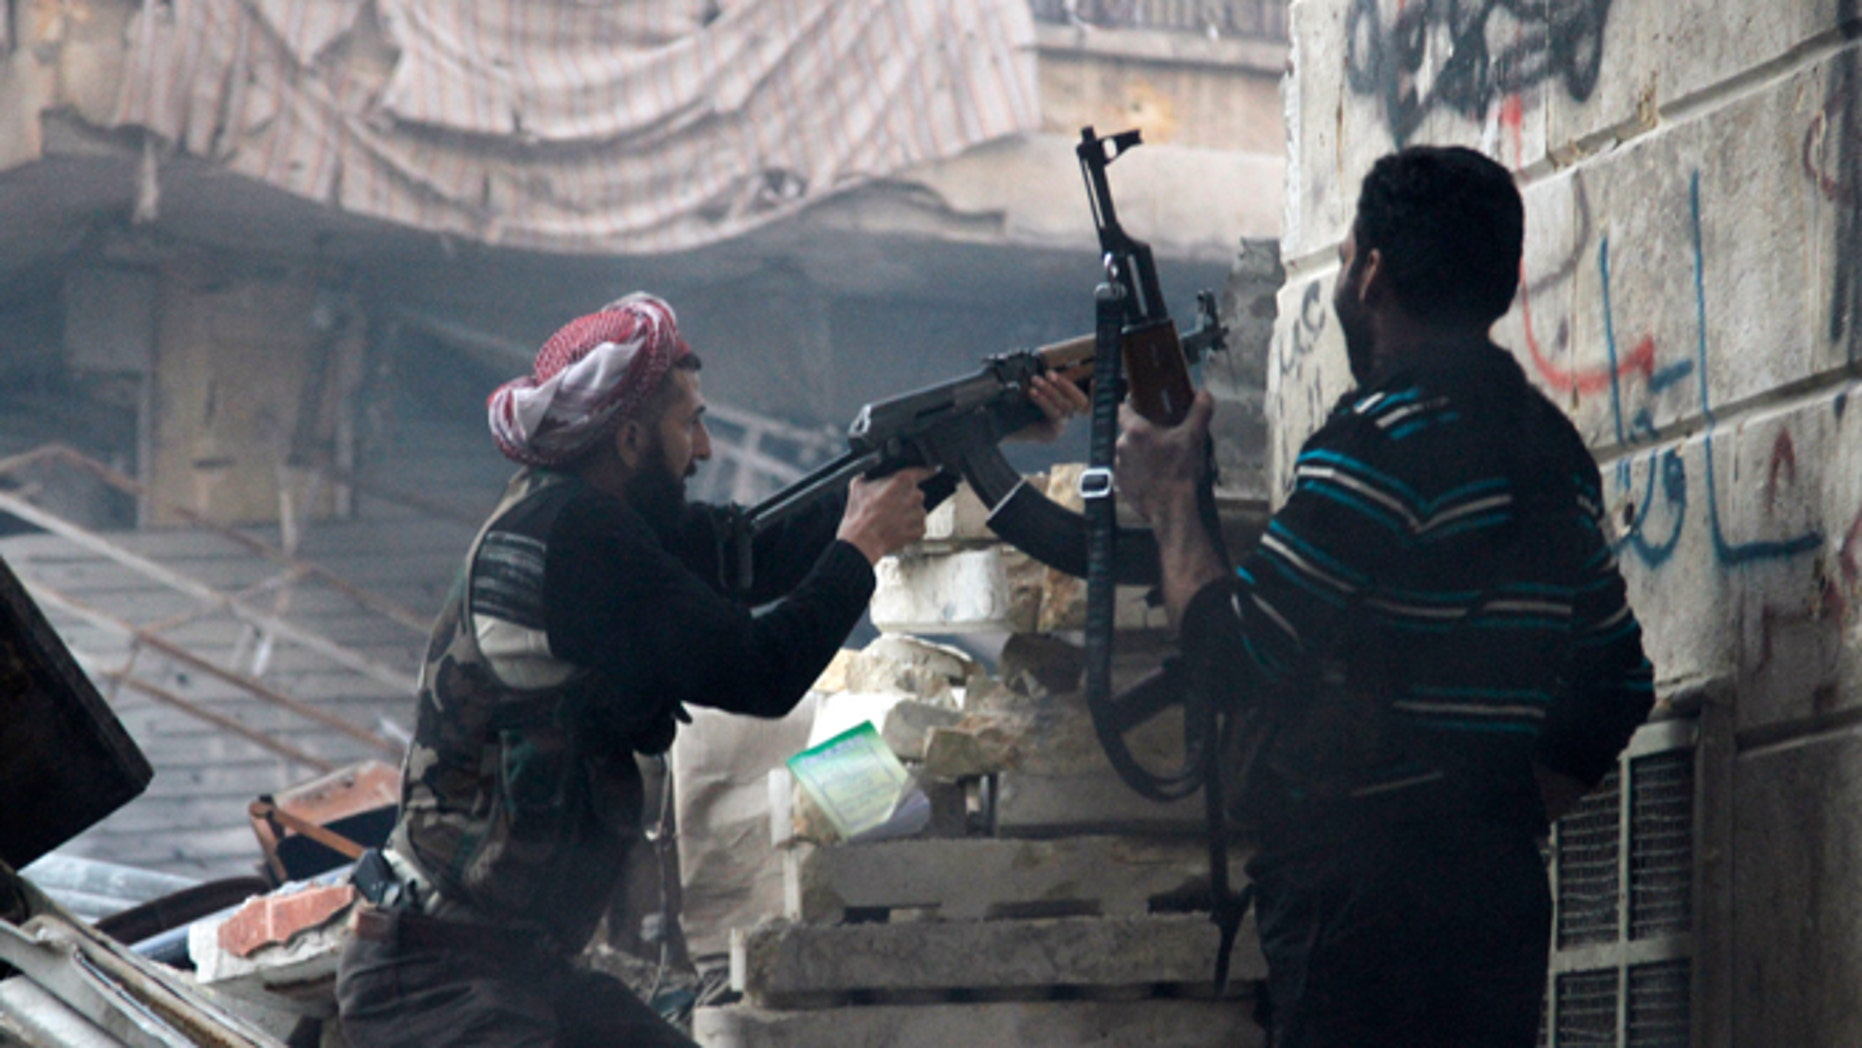 FILE: Dec. 29, 2012: Free Syrian Army fighters fire at enemy positions during heavy clashes with government forces, in the Salaheddine district in Aleppo, Syria.